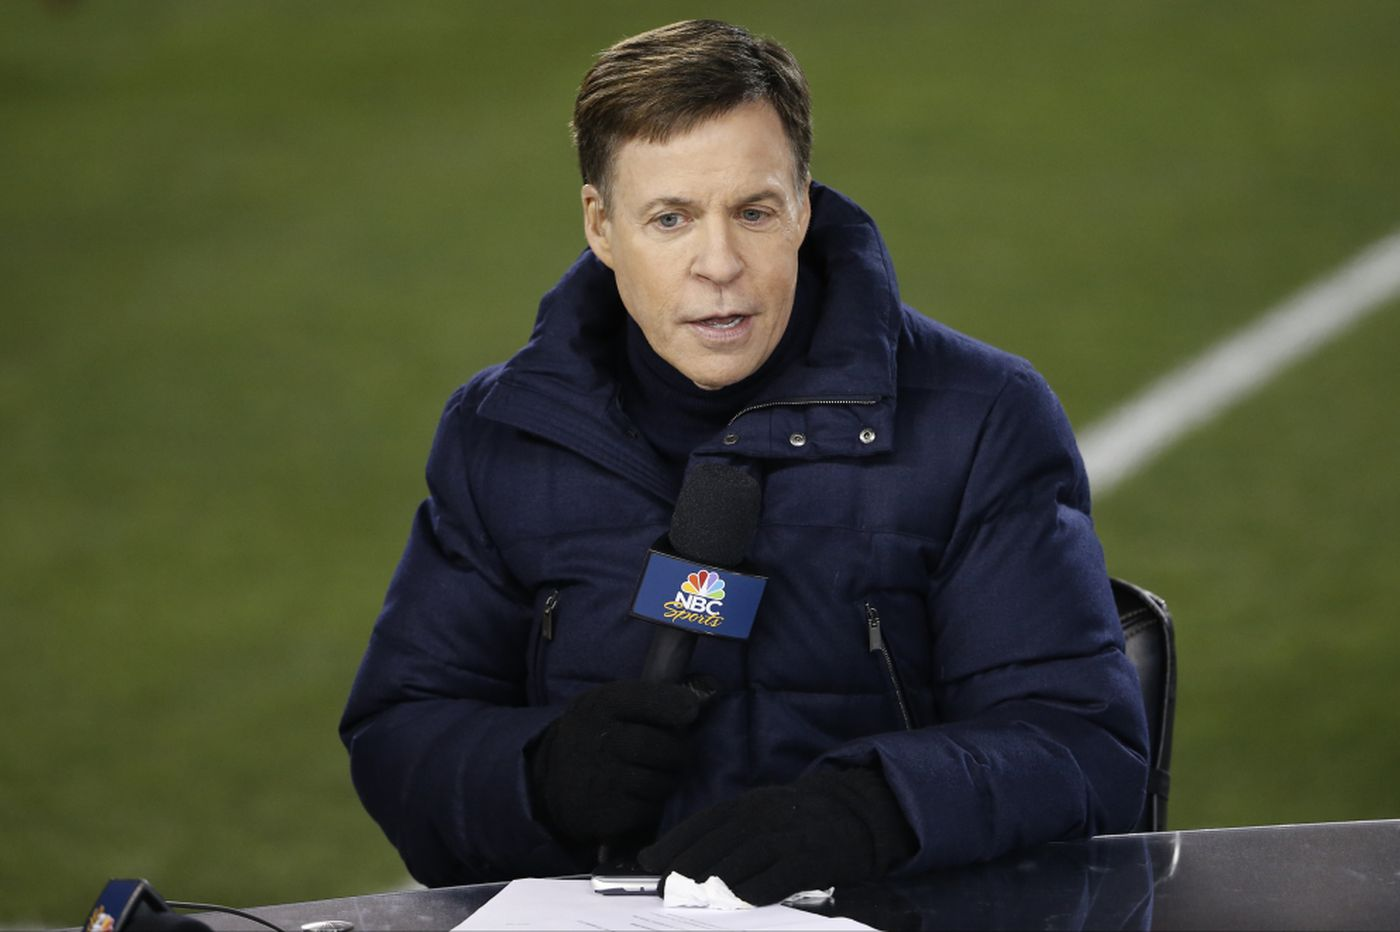 Bob Costas looking to exit NBC after disappearing from its coverage